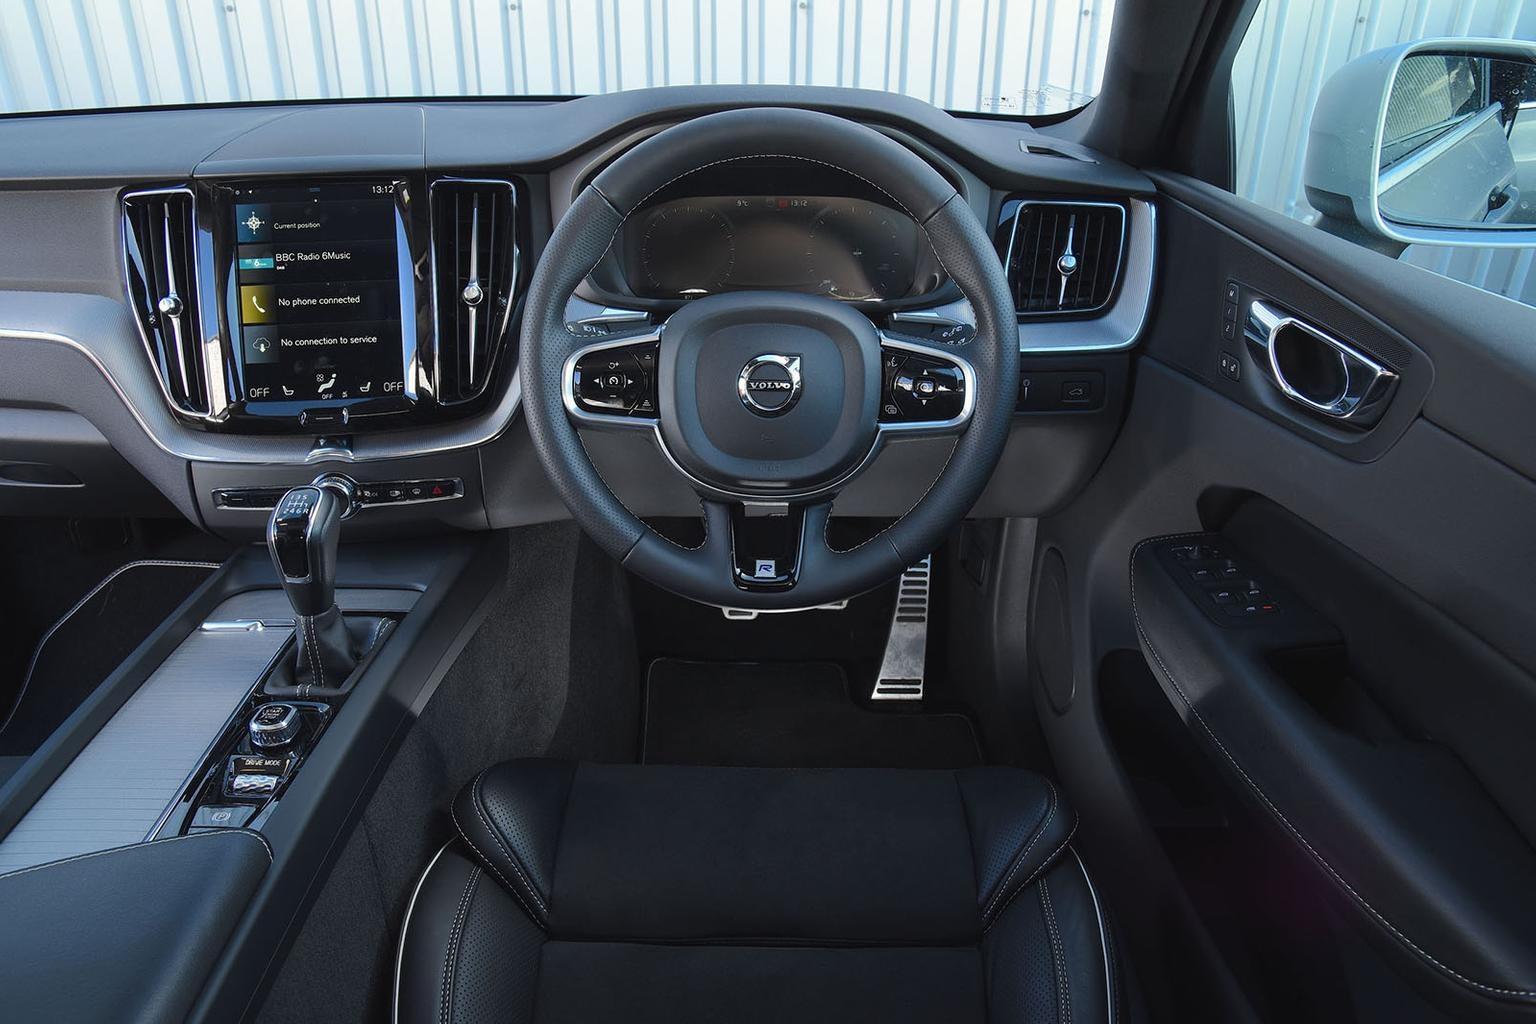 2018 Volvo XC60 D4 Manual review - price, specs and release date